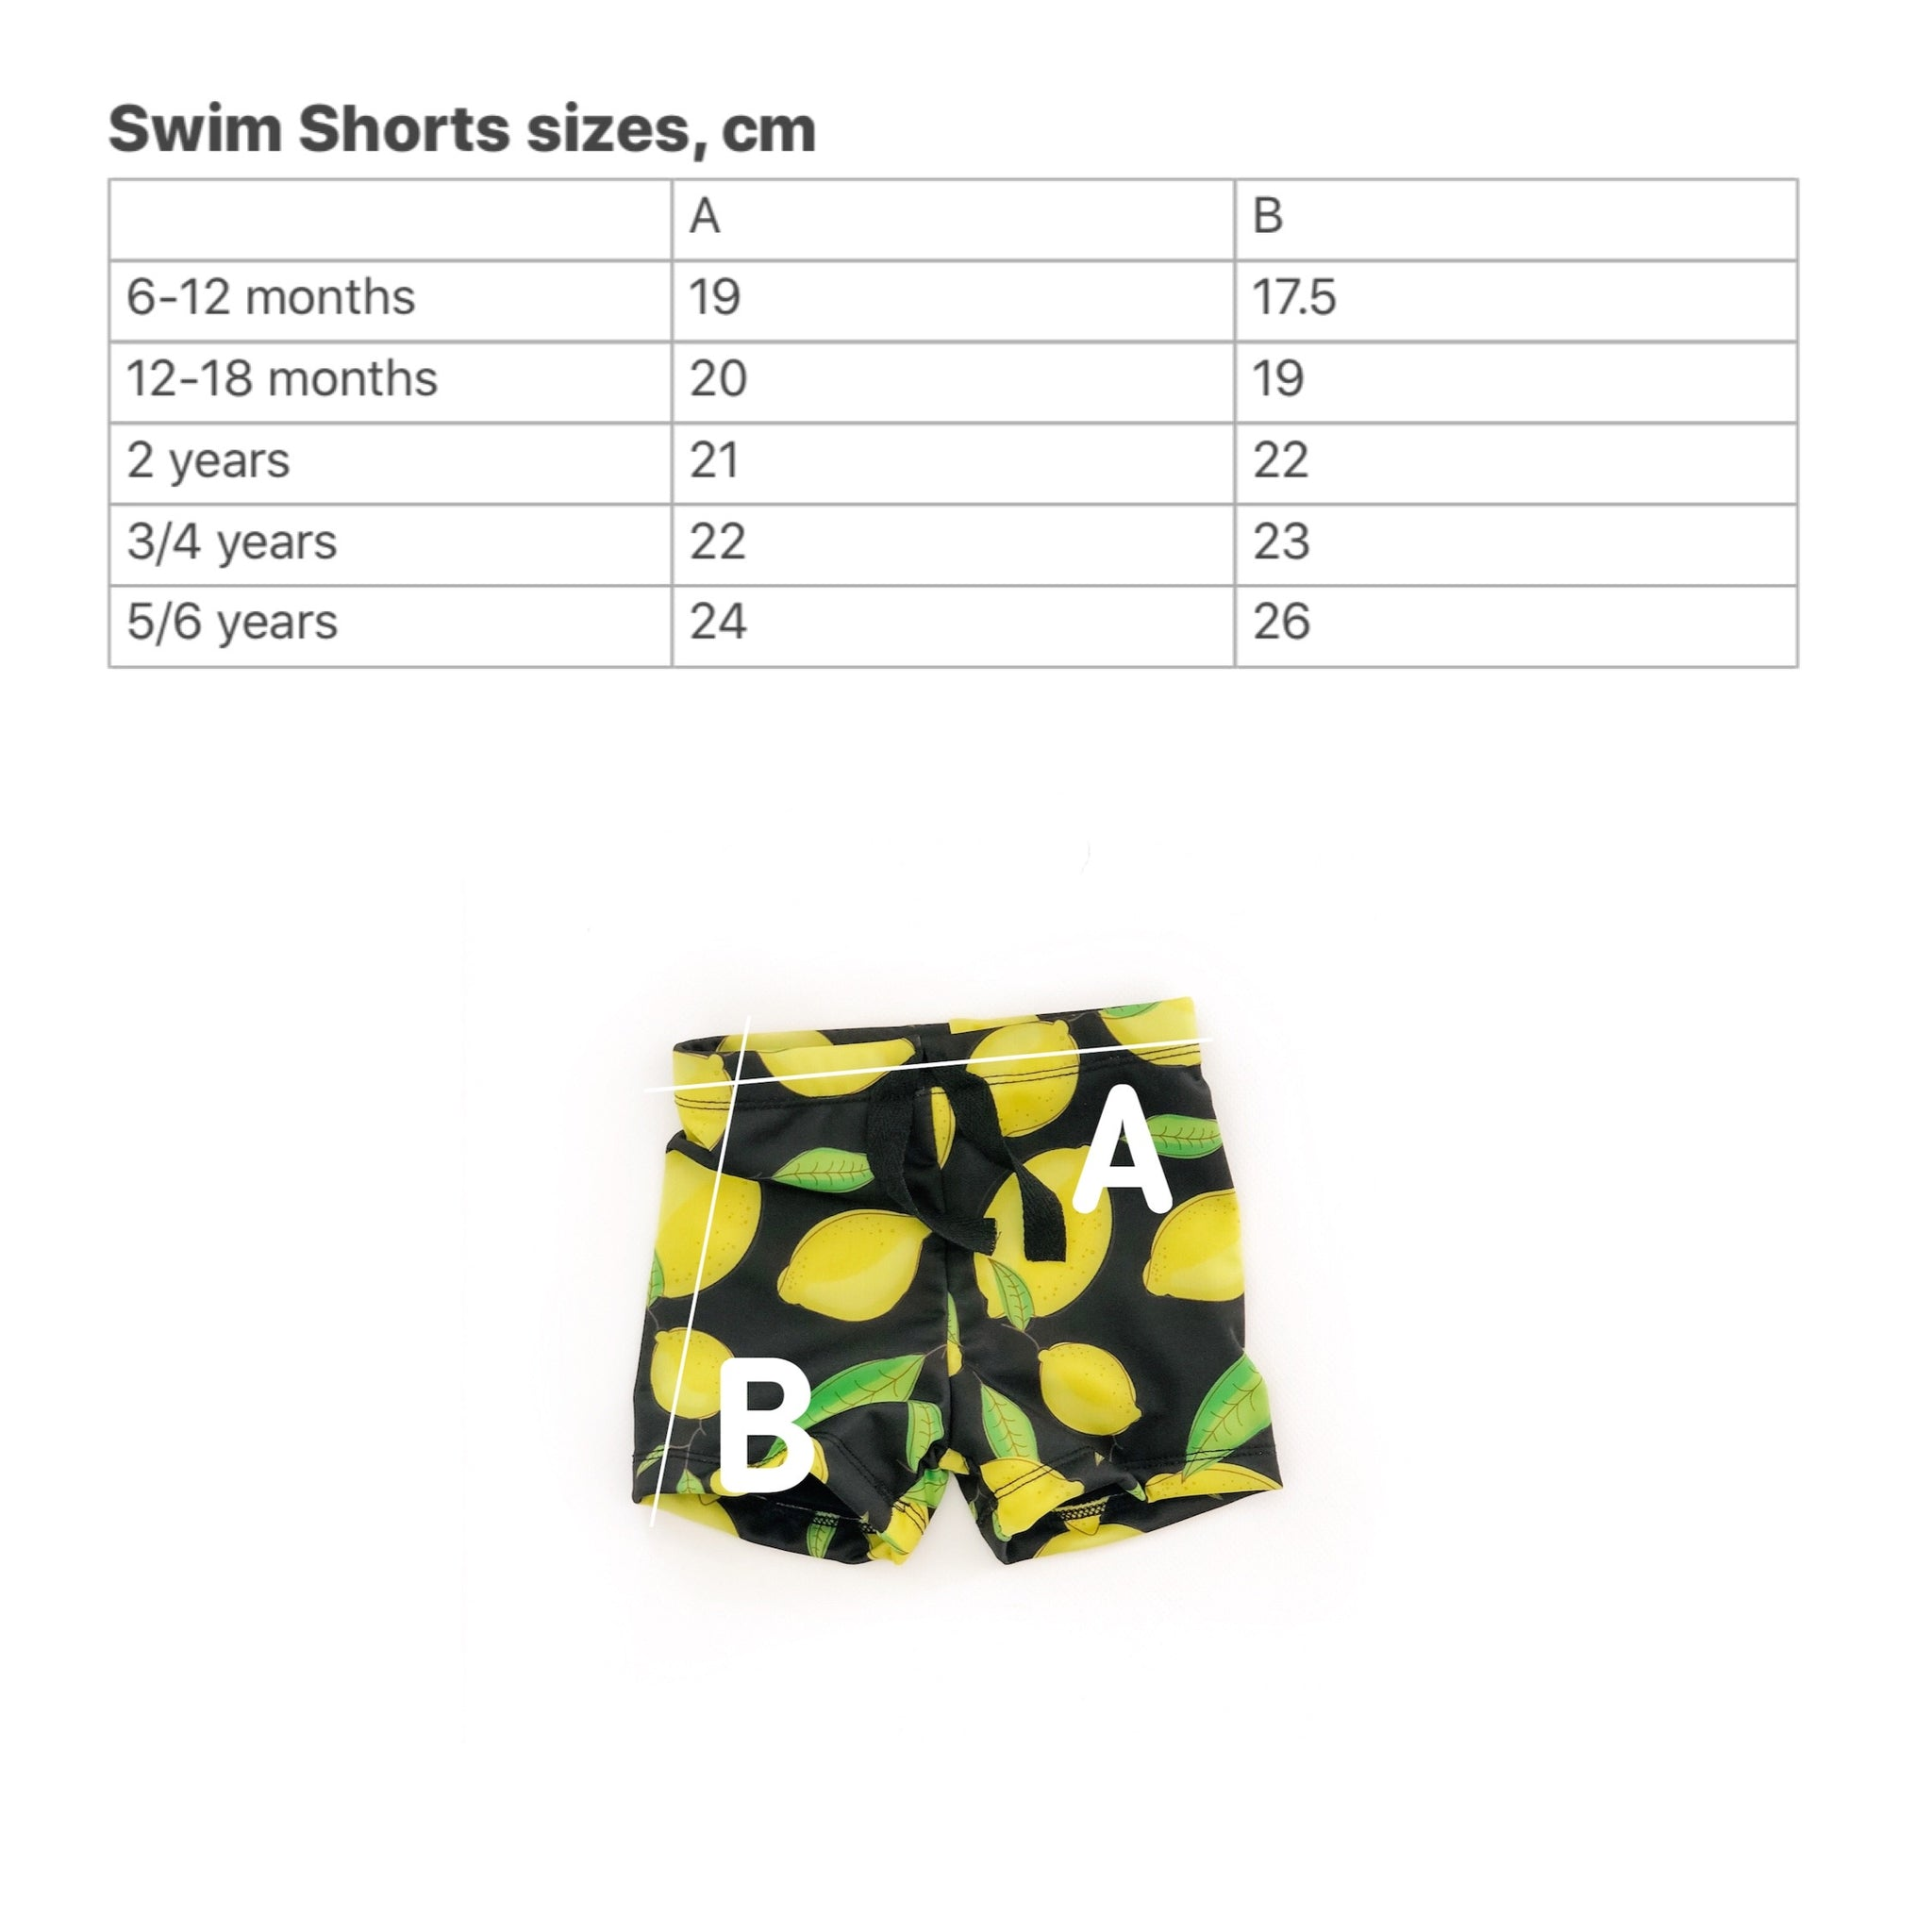 Swim shorts with Fruits